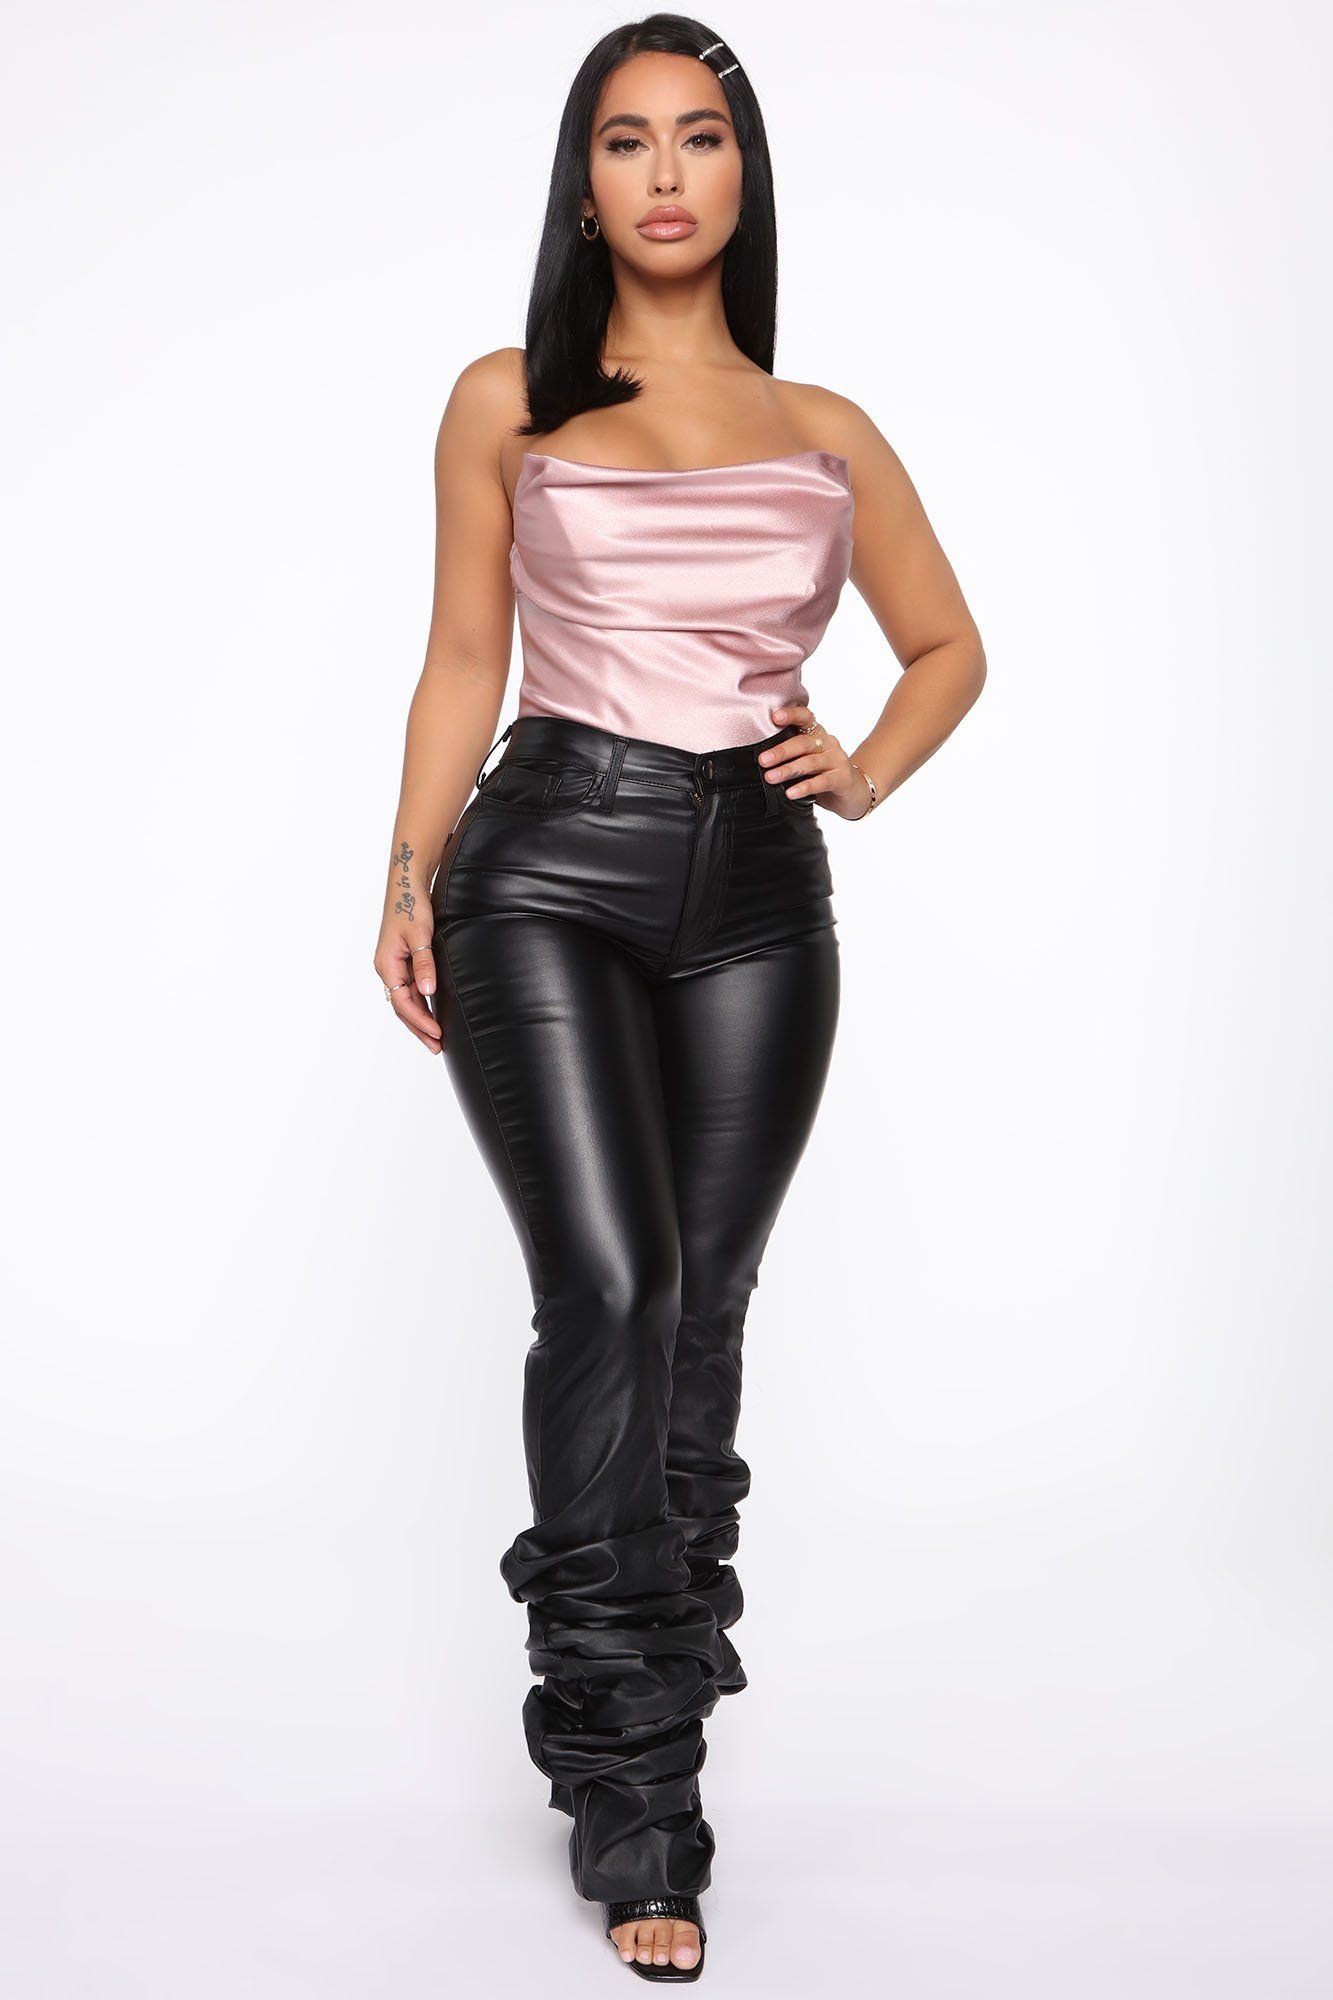 Dates With Him Satin Bustier Pink in 2020 Bustier